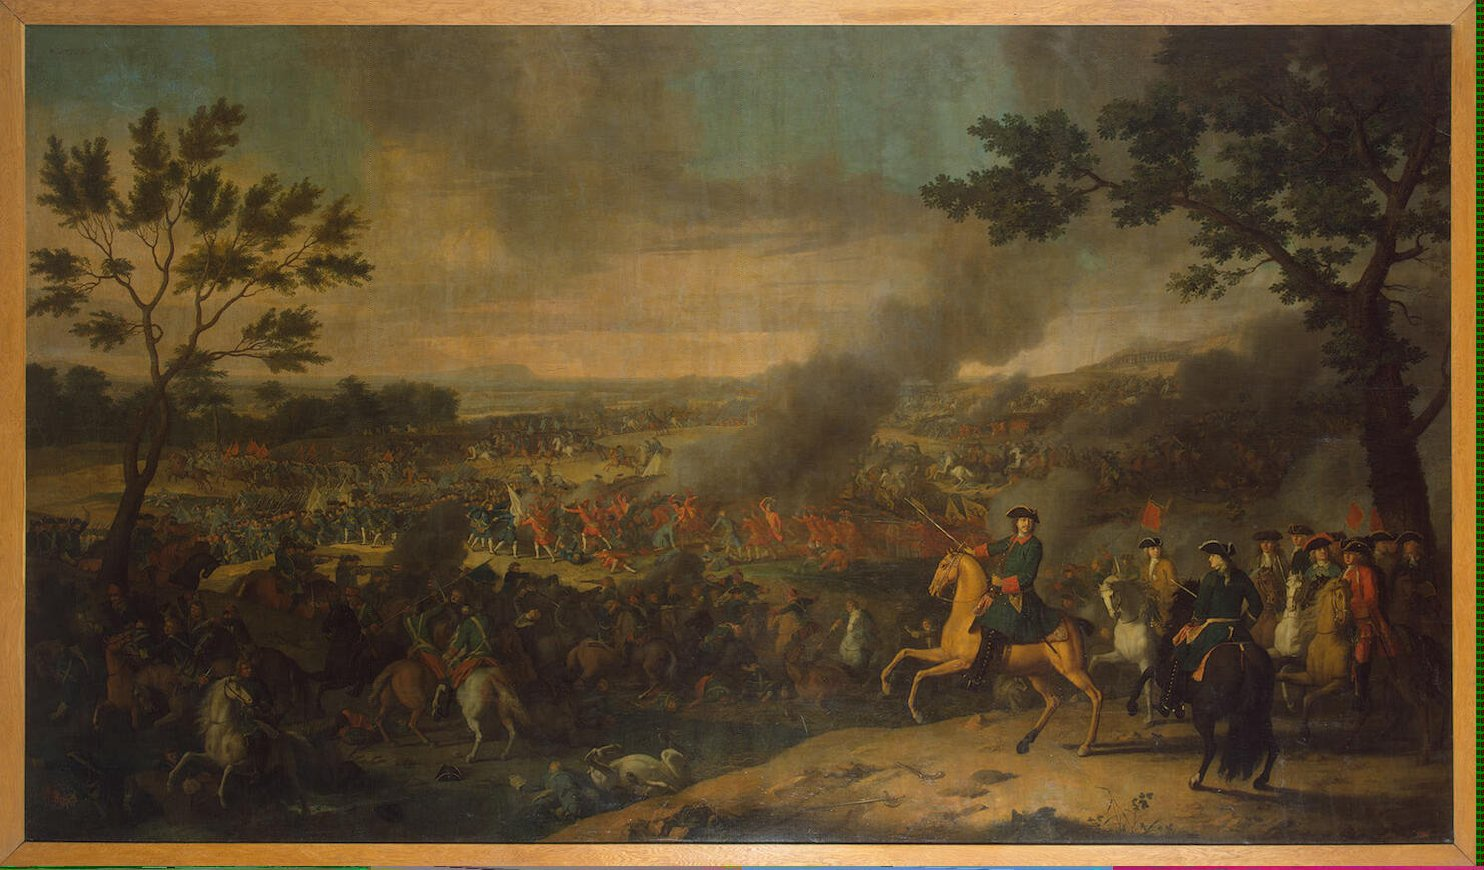 Battle of Poltava in 1709. Tsar Peter I of Russia is shown on a horse.